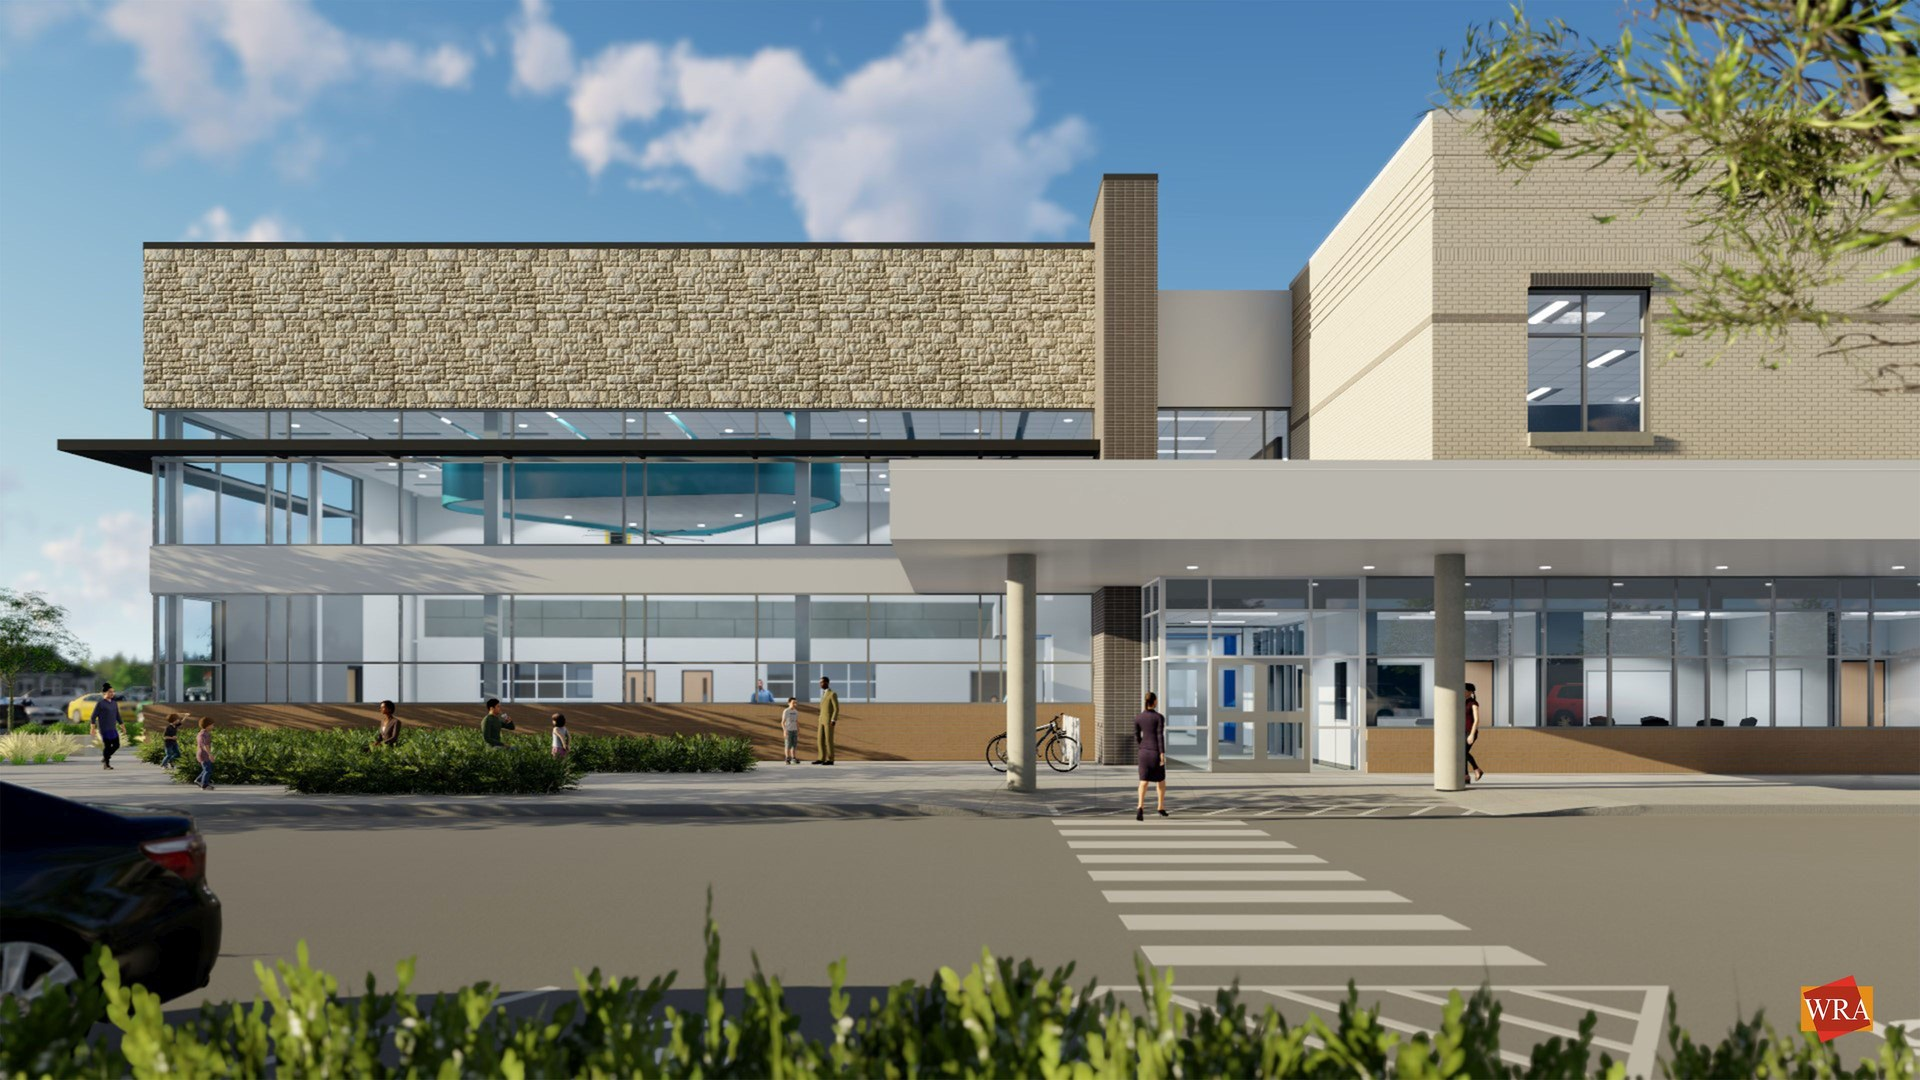 New Elementary School Elevation